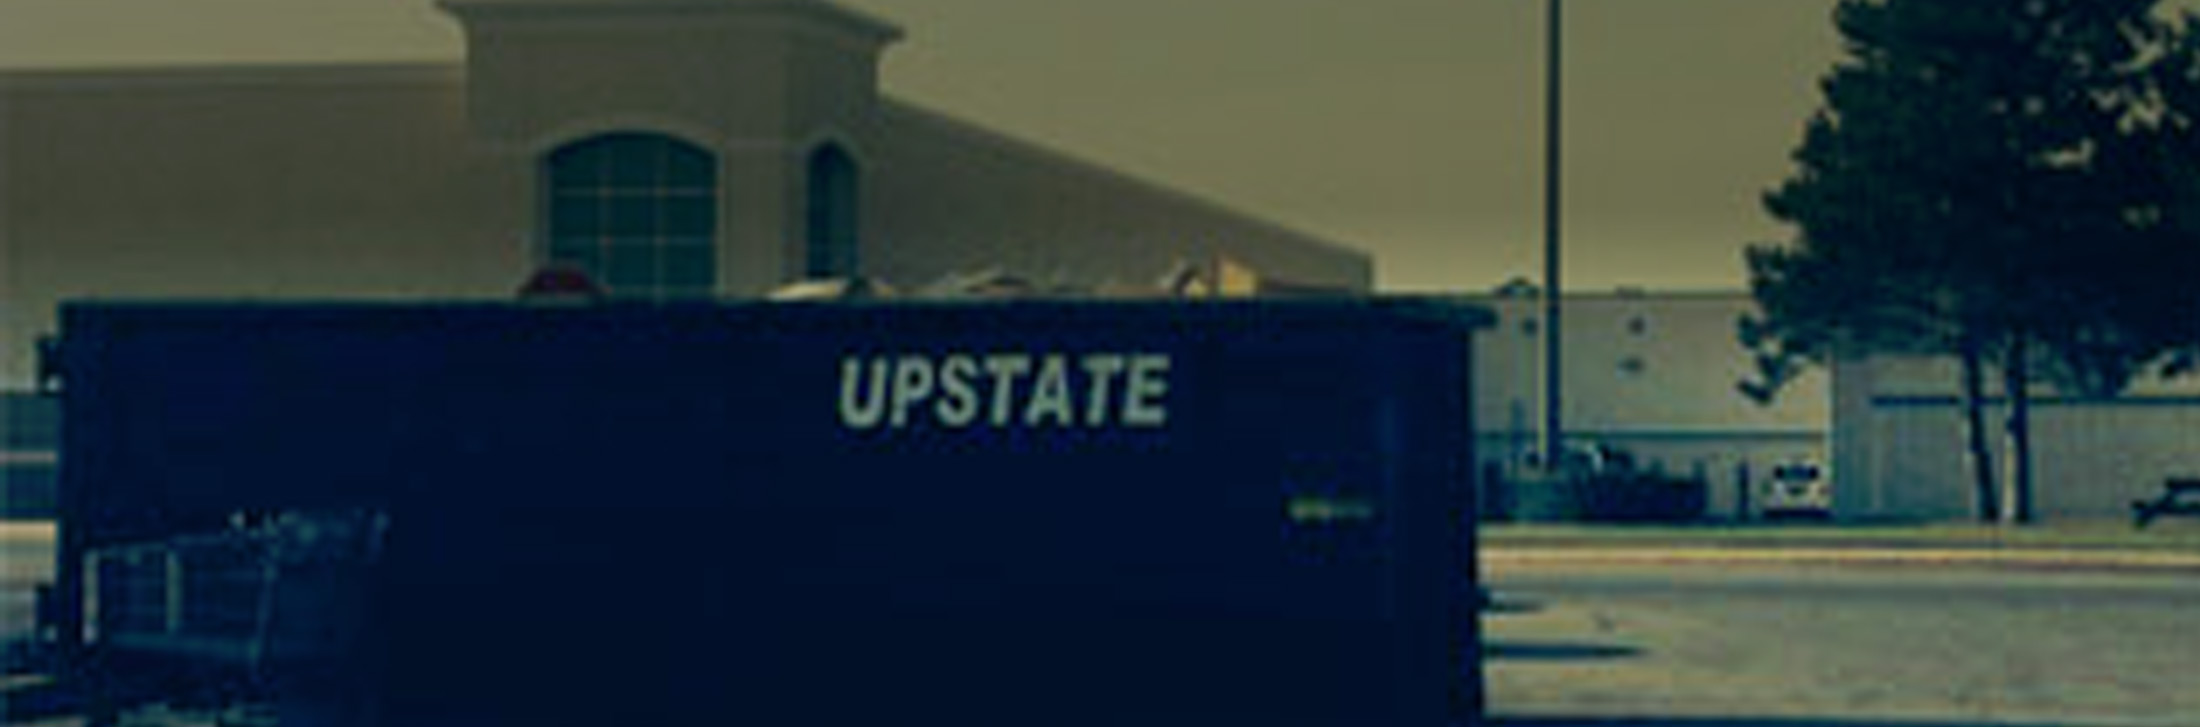 Upstate Dumpsters: You Toss It, We Haul It!